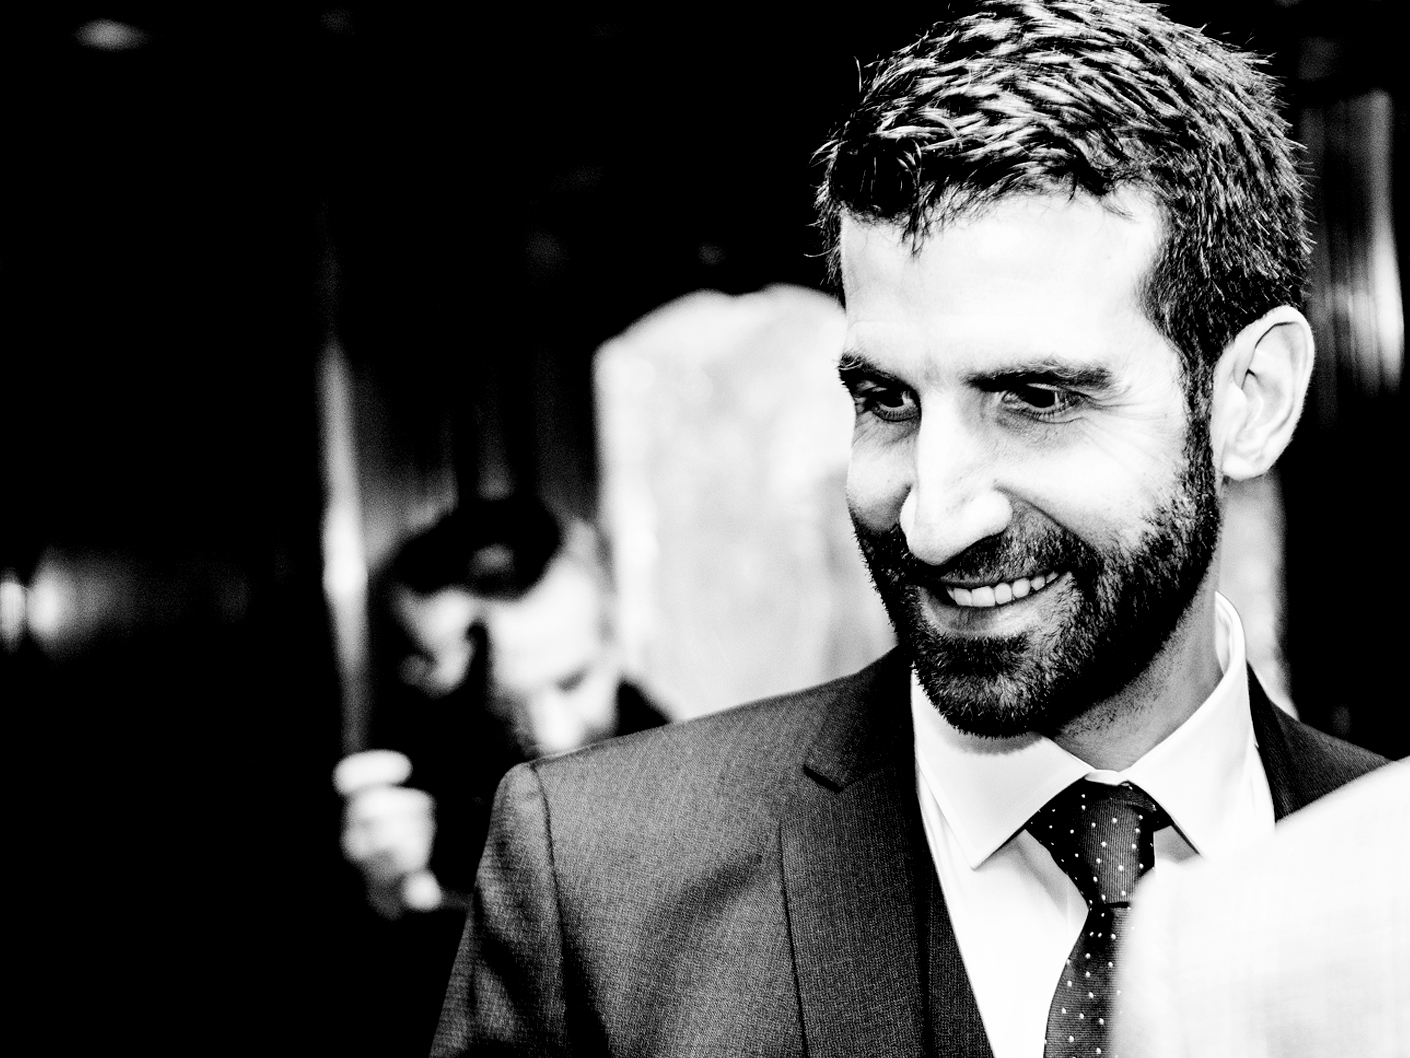 wedding-photography-of-the-groom-at-hope-street-hotel-liverpool